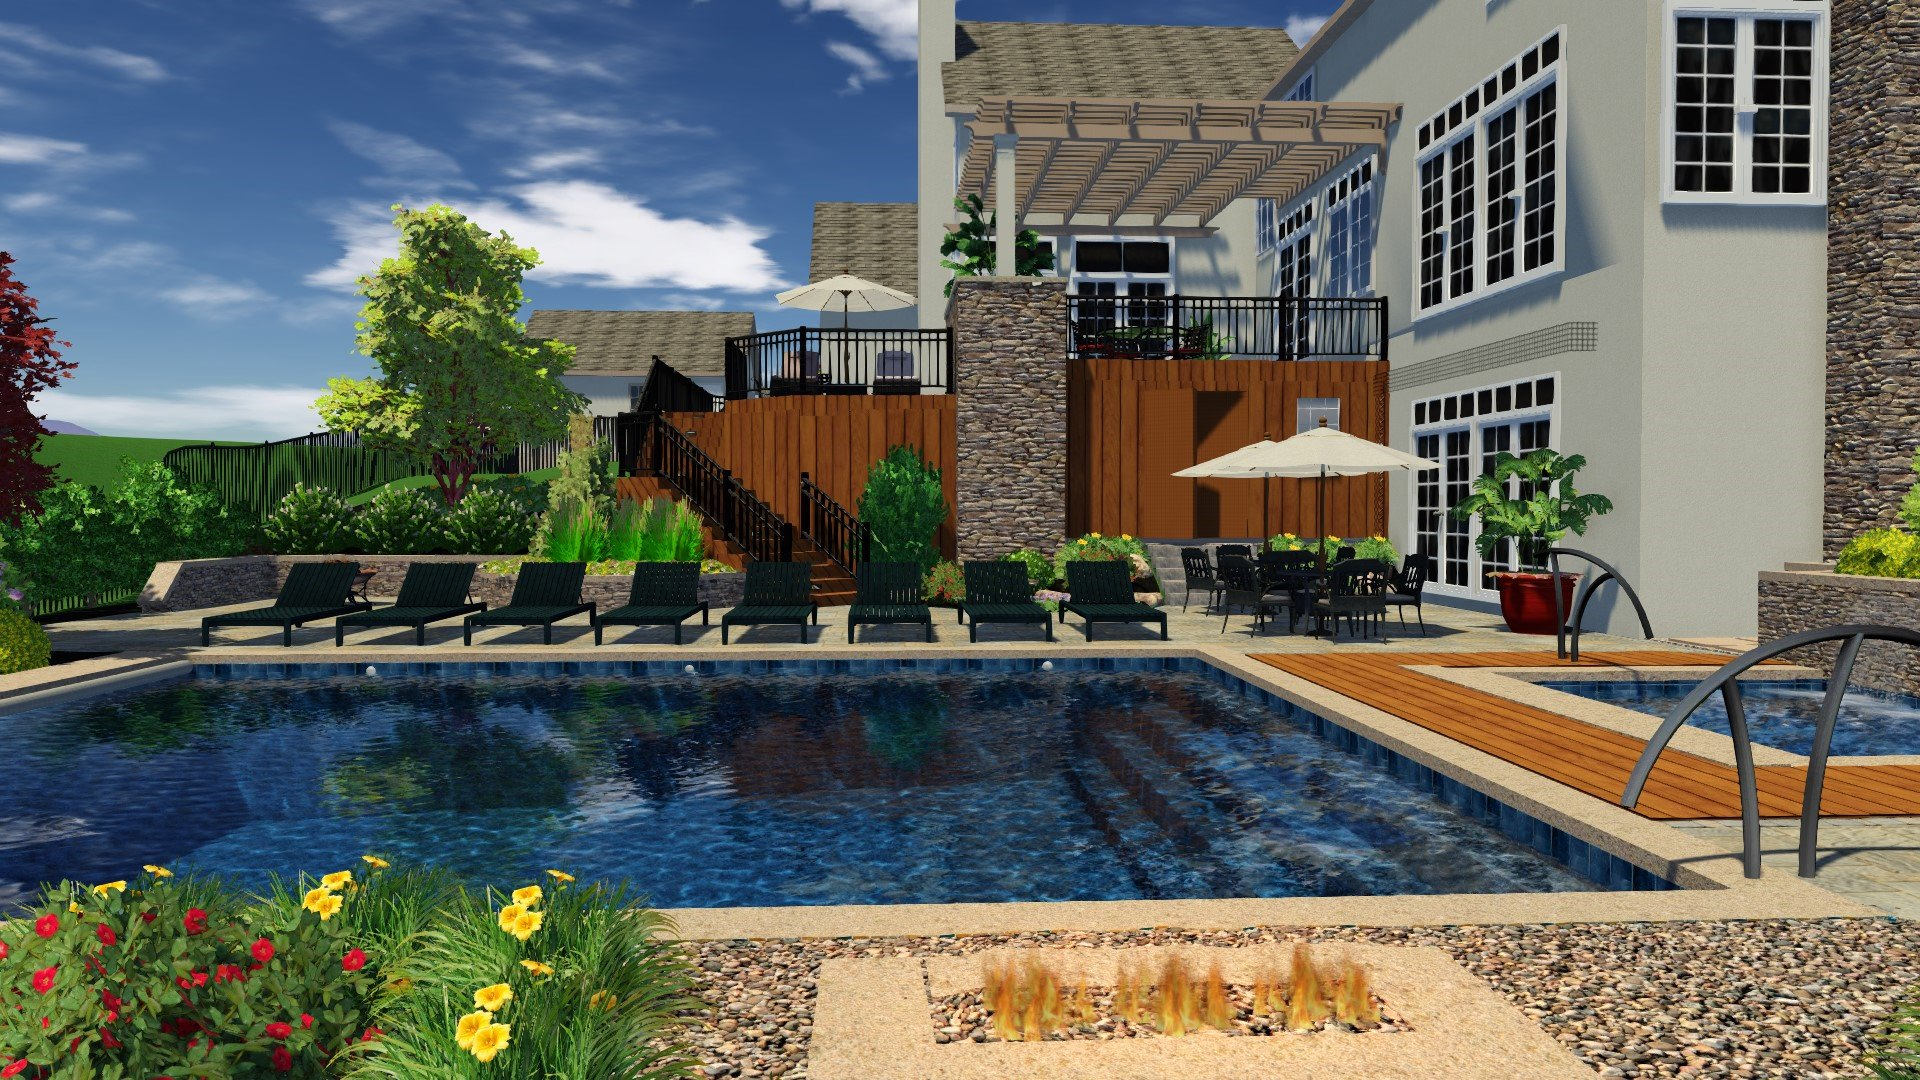 This 3D rendering makes us want to cannonball right into that water!